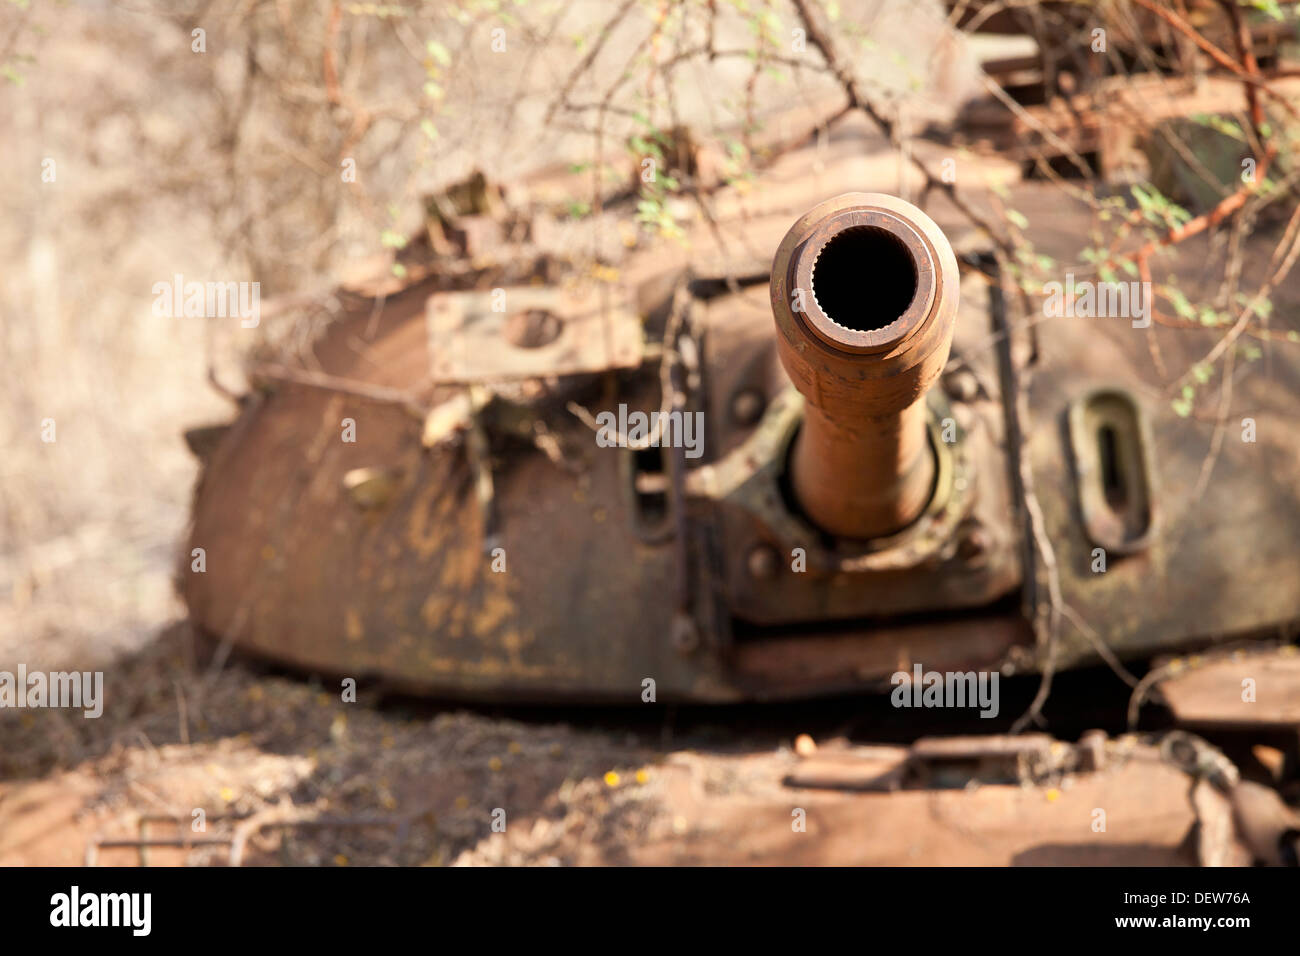 Destroyed northern Sudanese tank, Juba-Bor road, southern Sudan, December 2010 - Stock Image